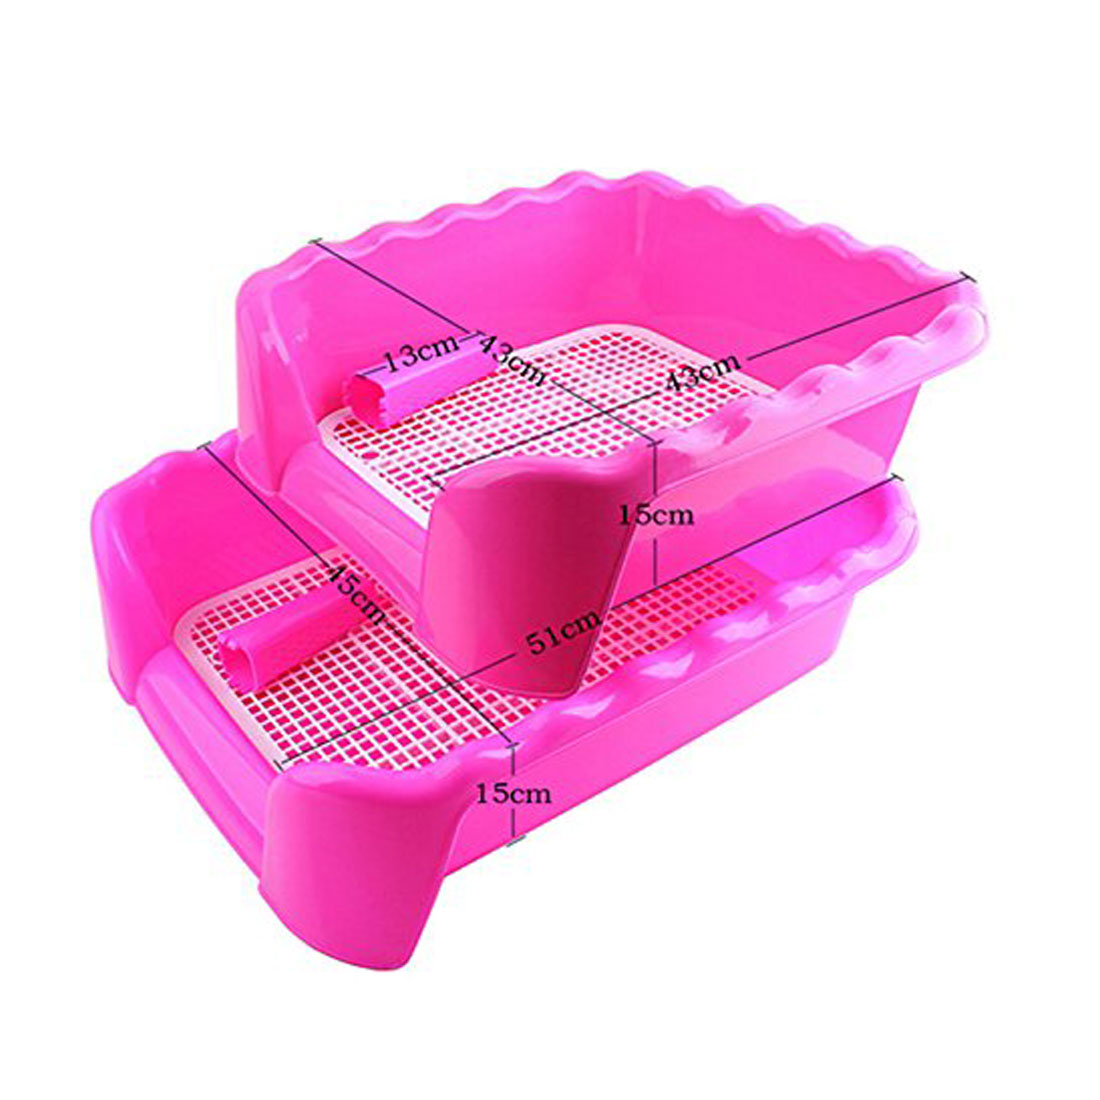 Portable Puppy Training Tray with Fence for Pet Dogs and Cats Potty and Pee Training Indoor 2